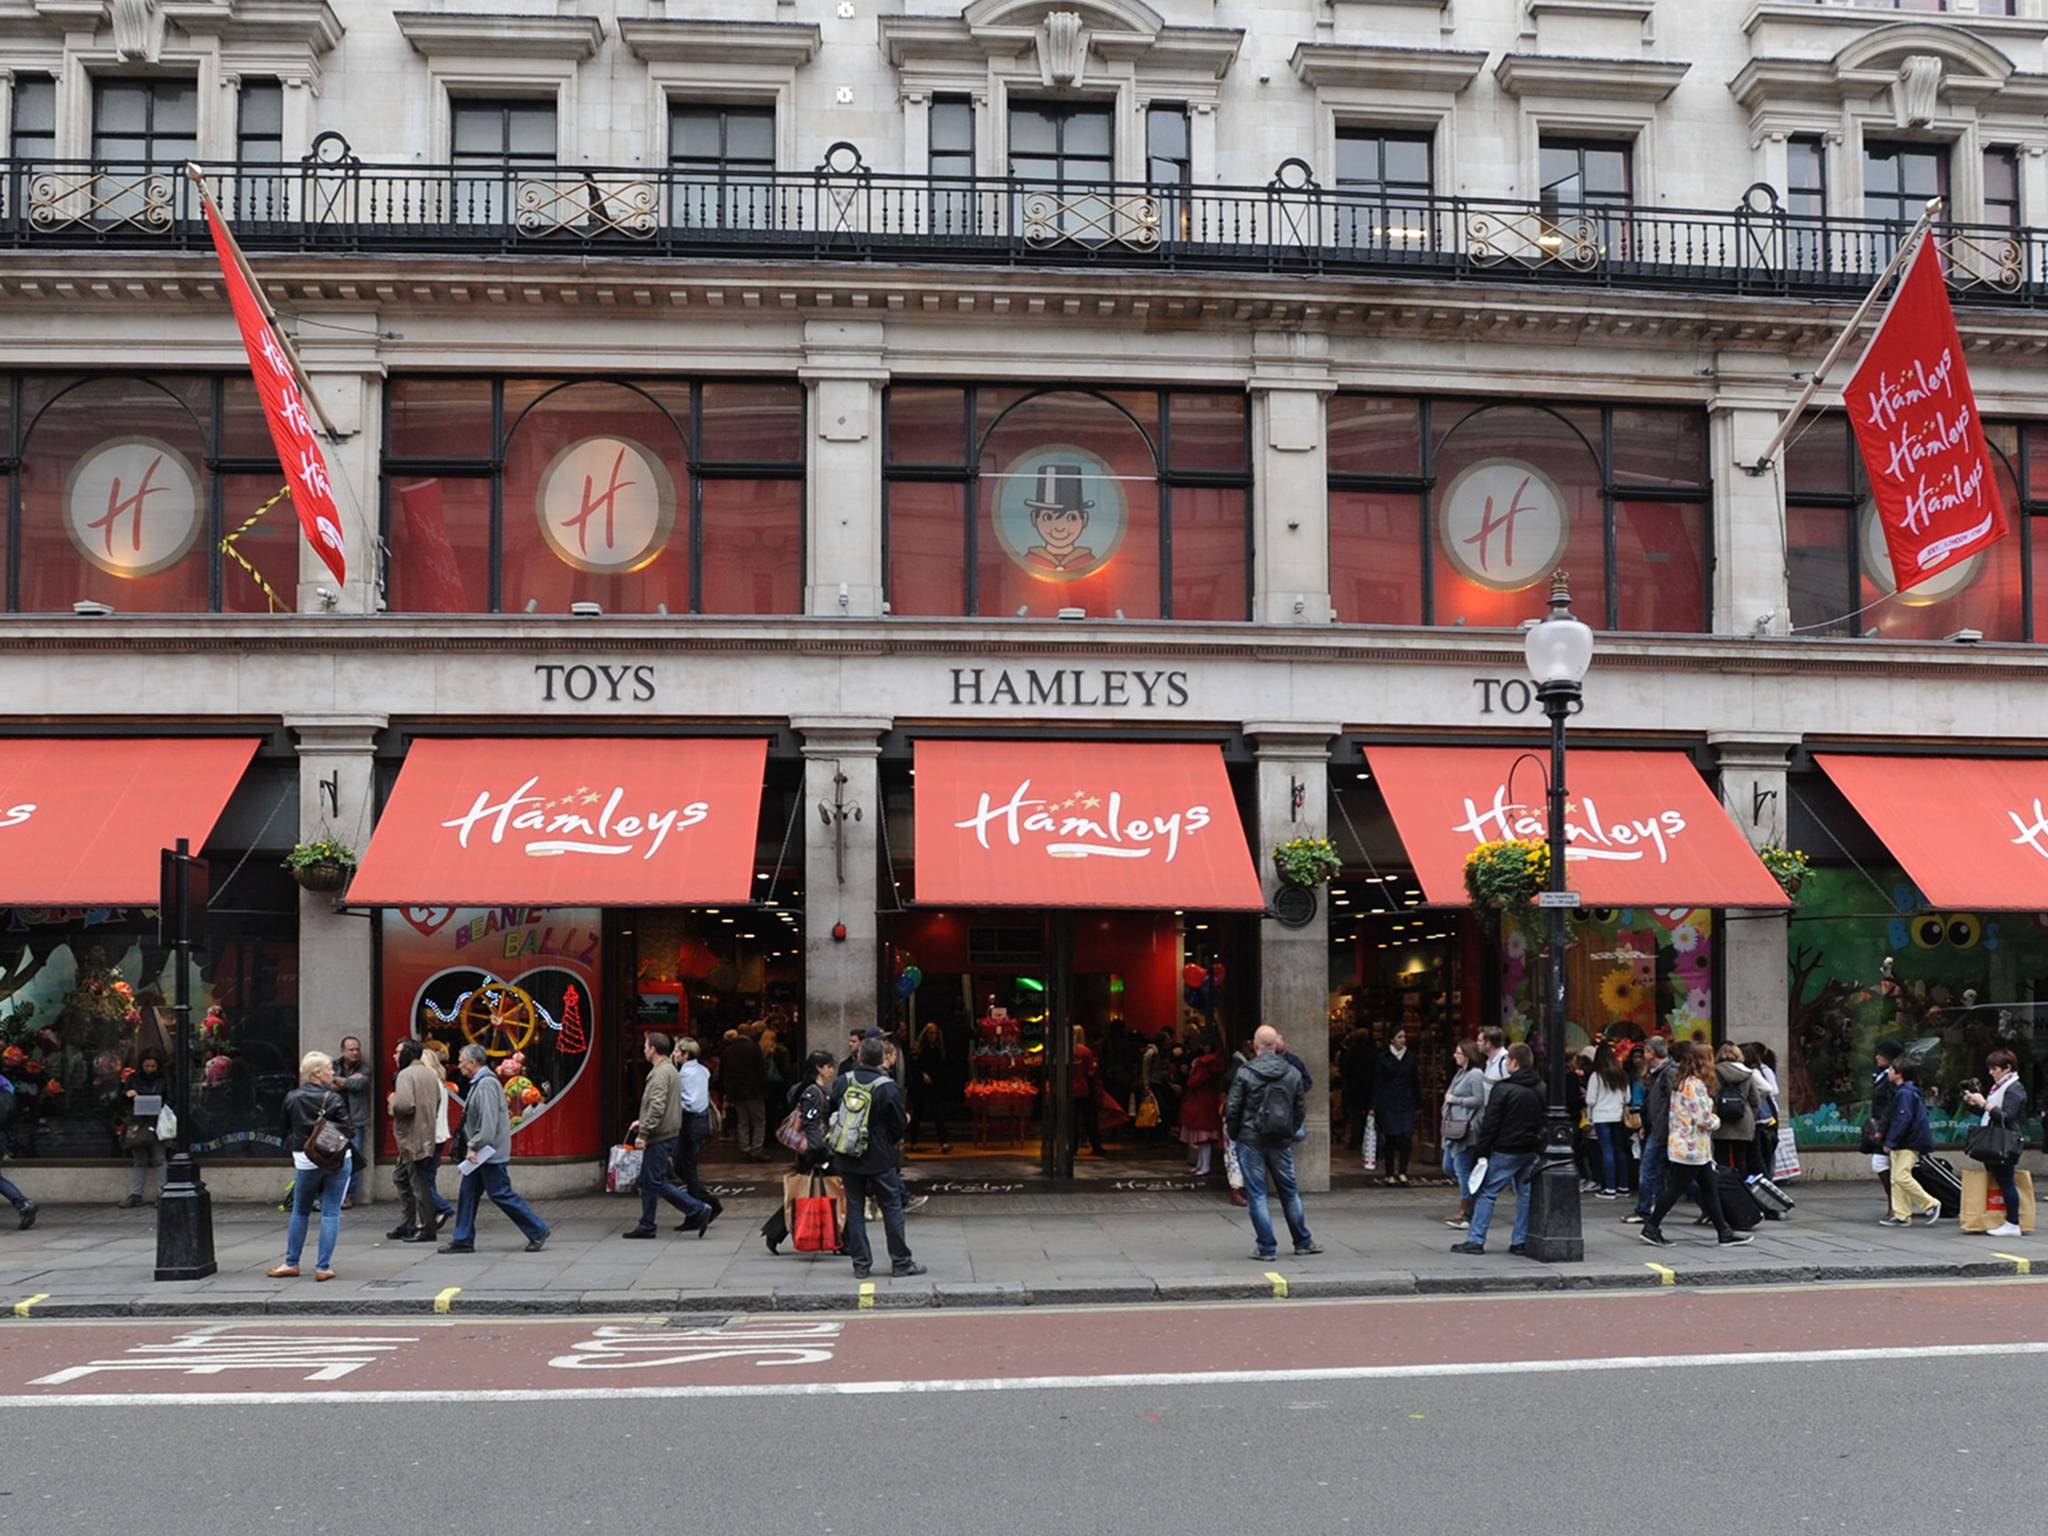 Hamleys Toy Store Regent Street, London